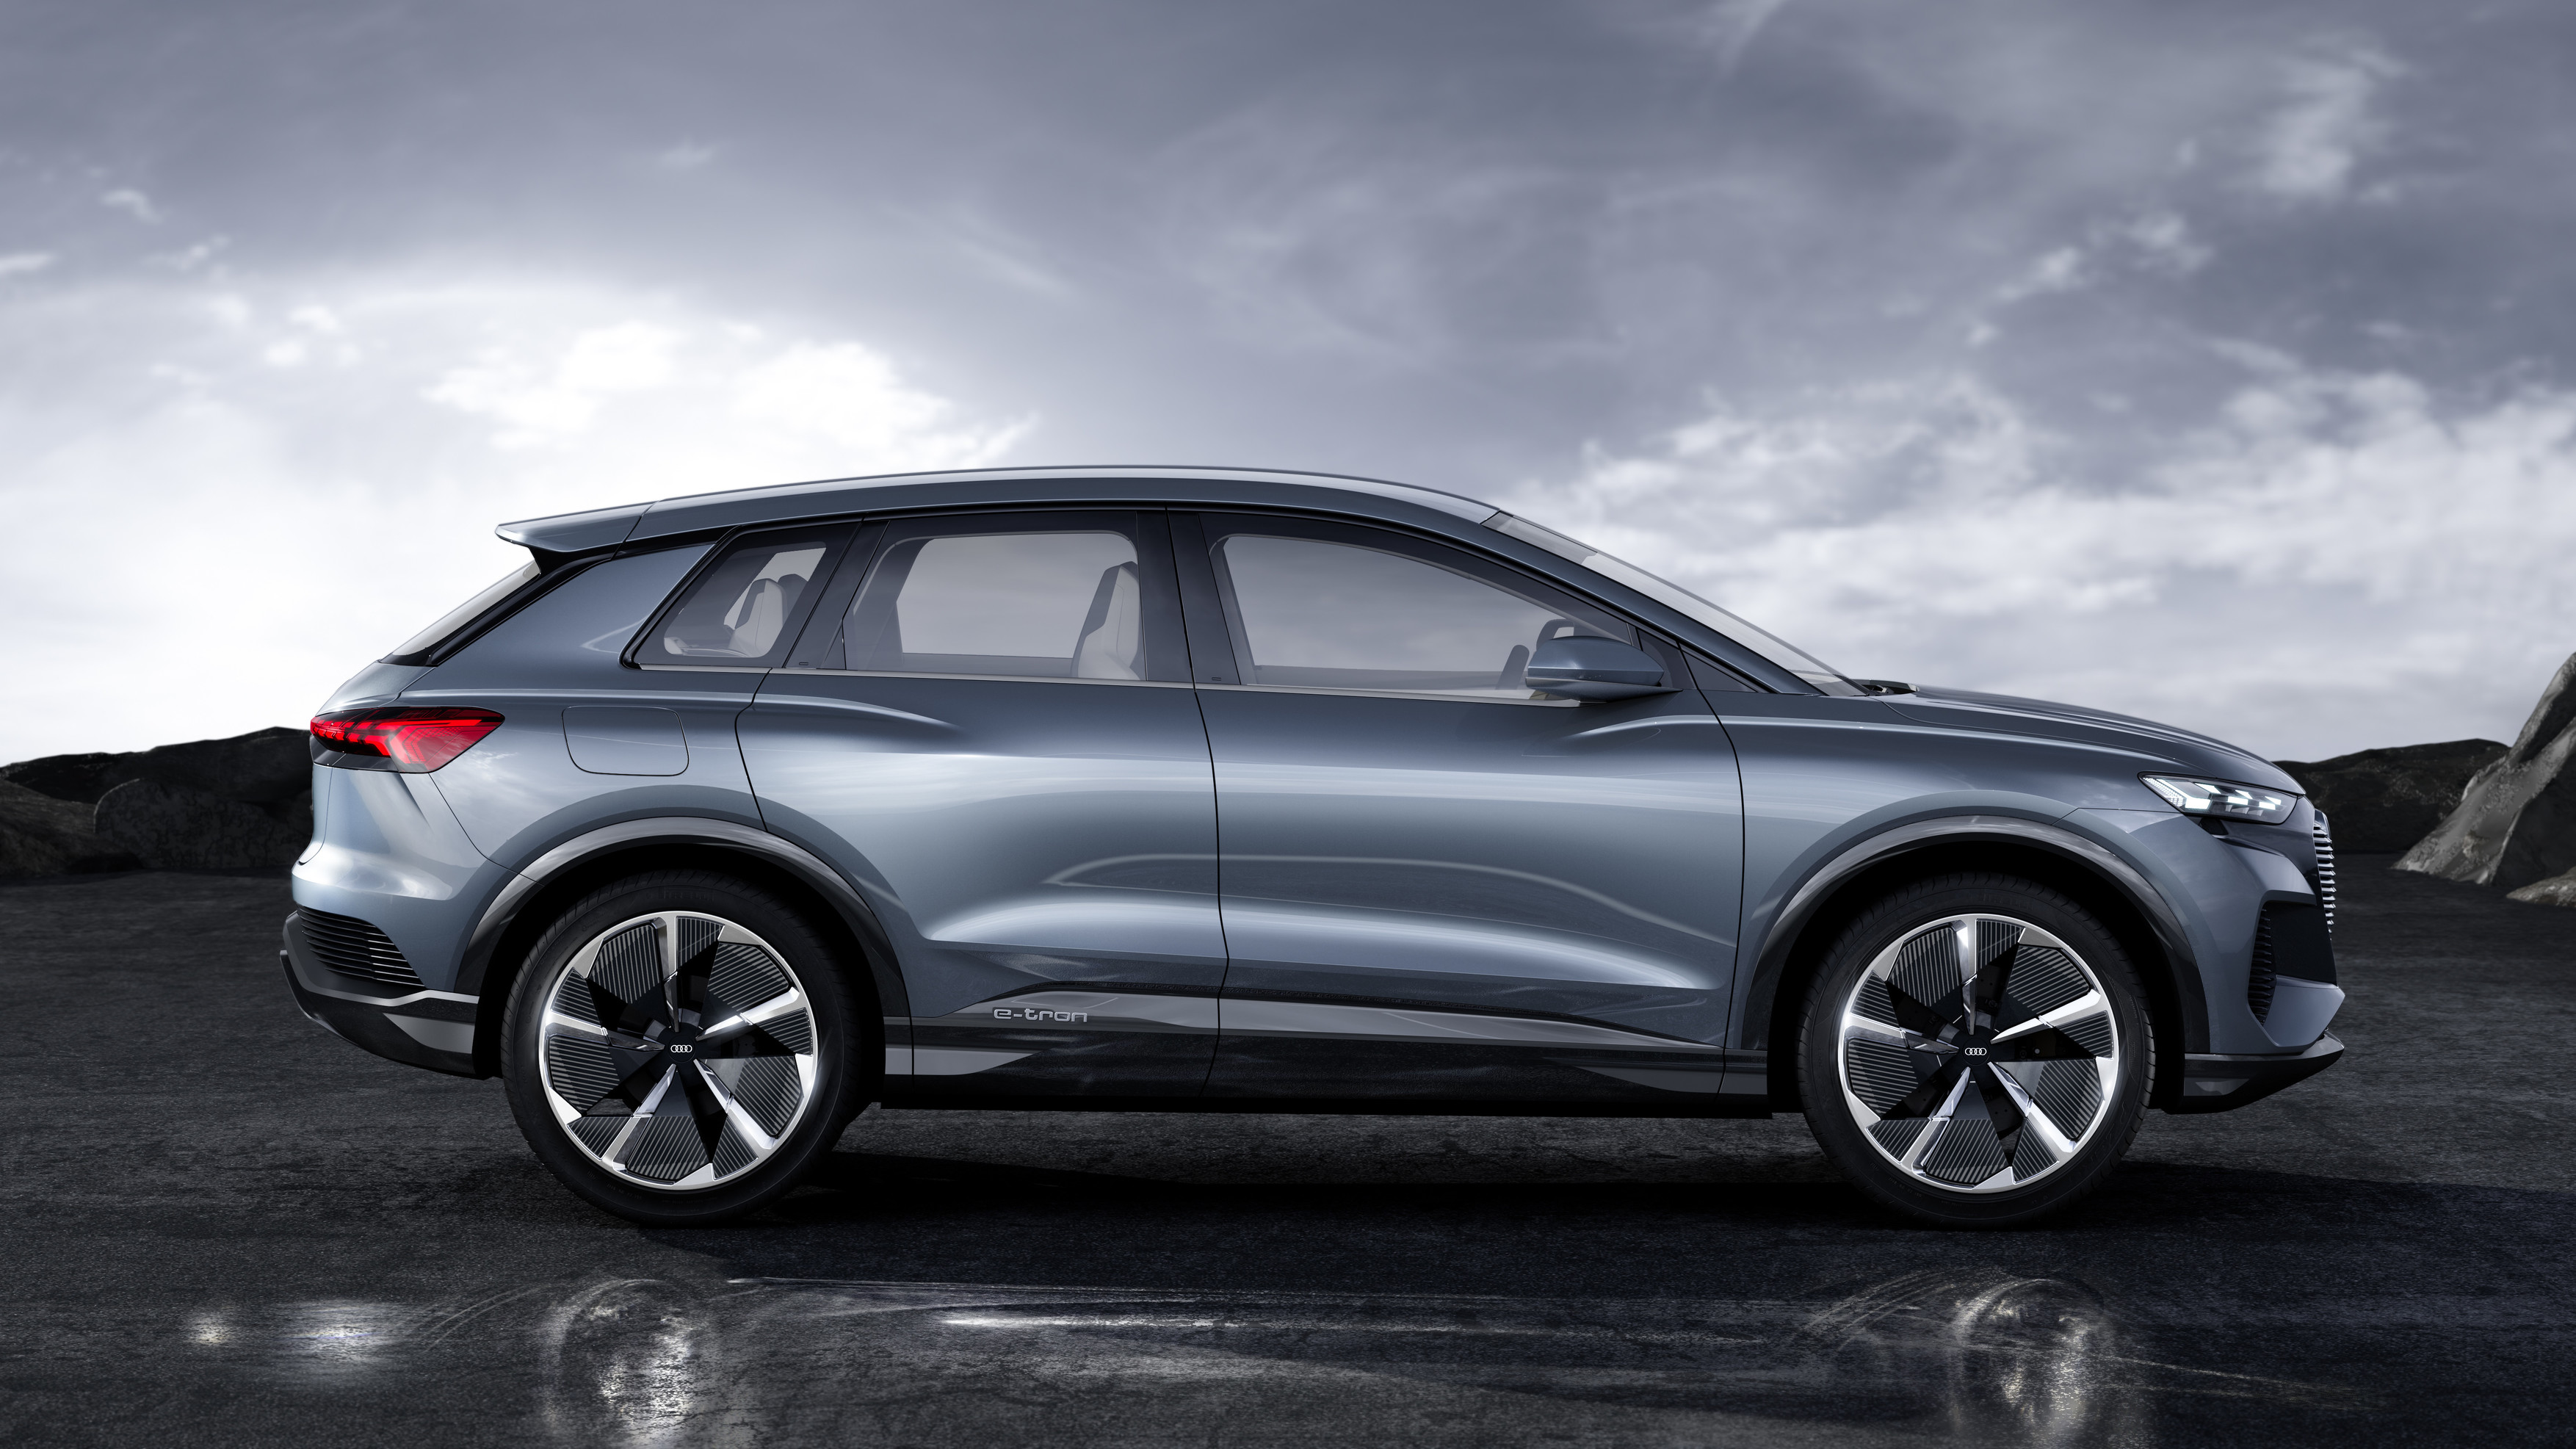 Audi announced the premiere of a new compact electric crossover